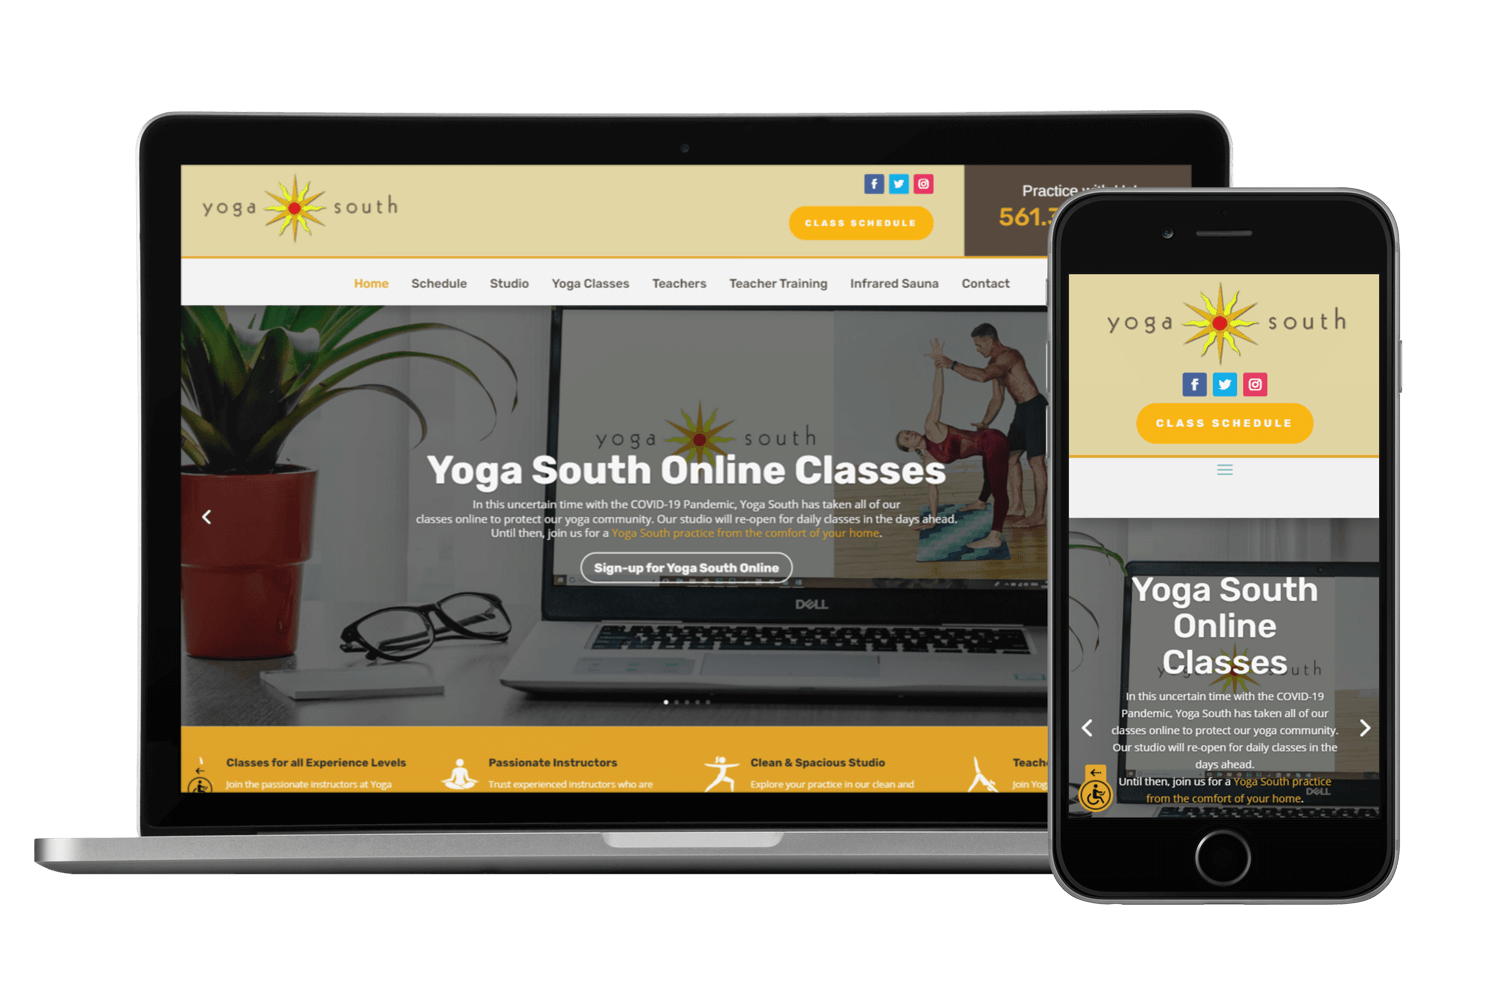 An image of the responsive web design created for Yoga South of Boca raton.